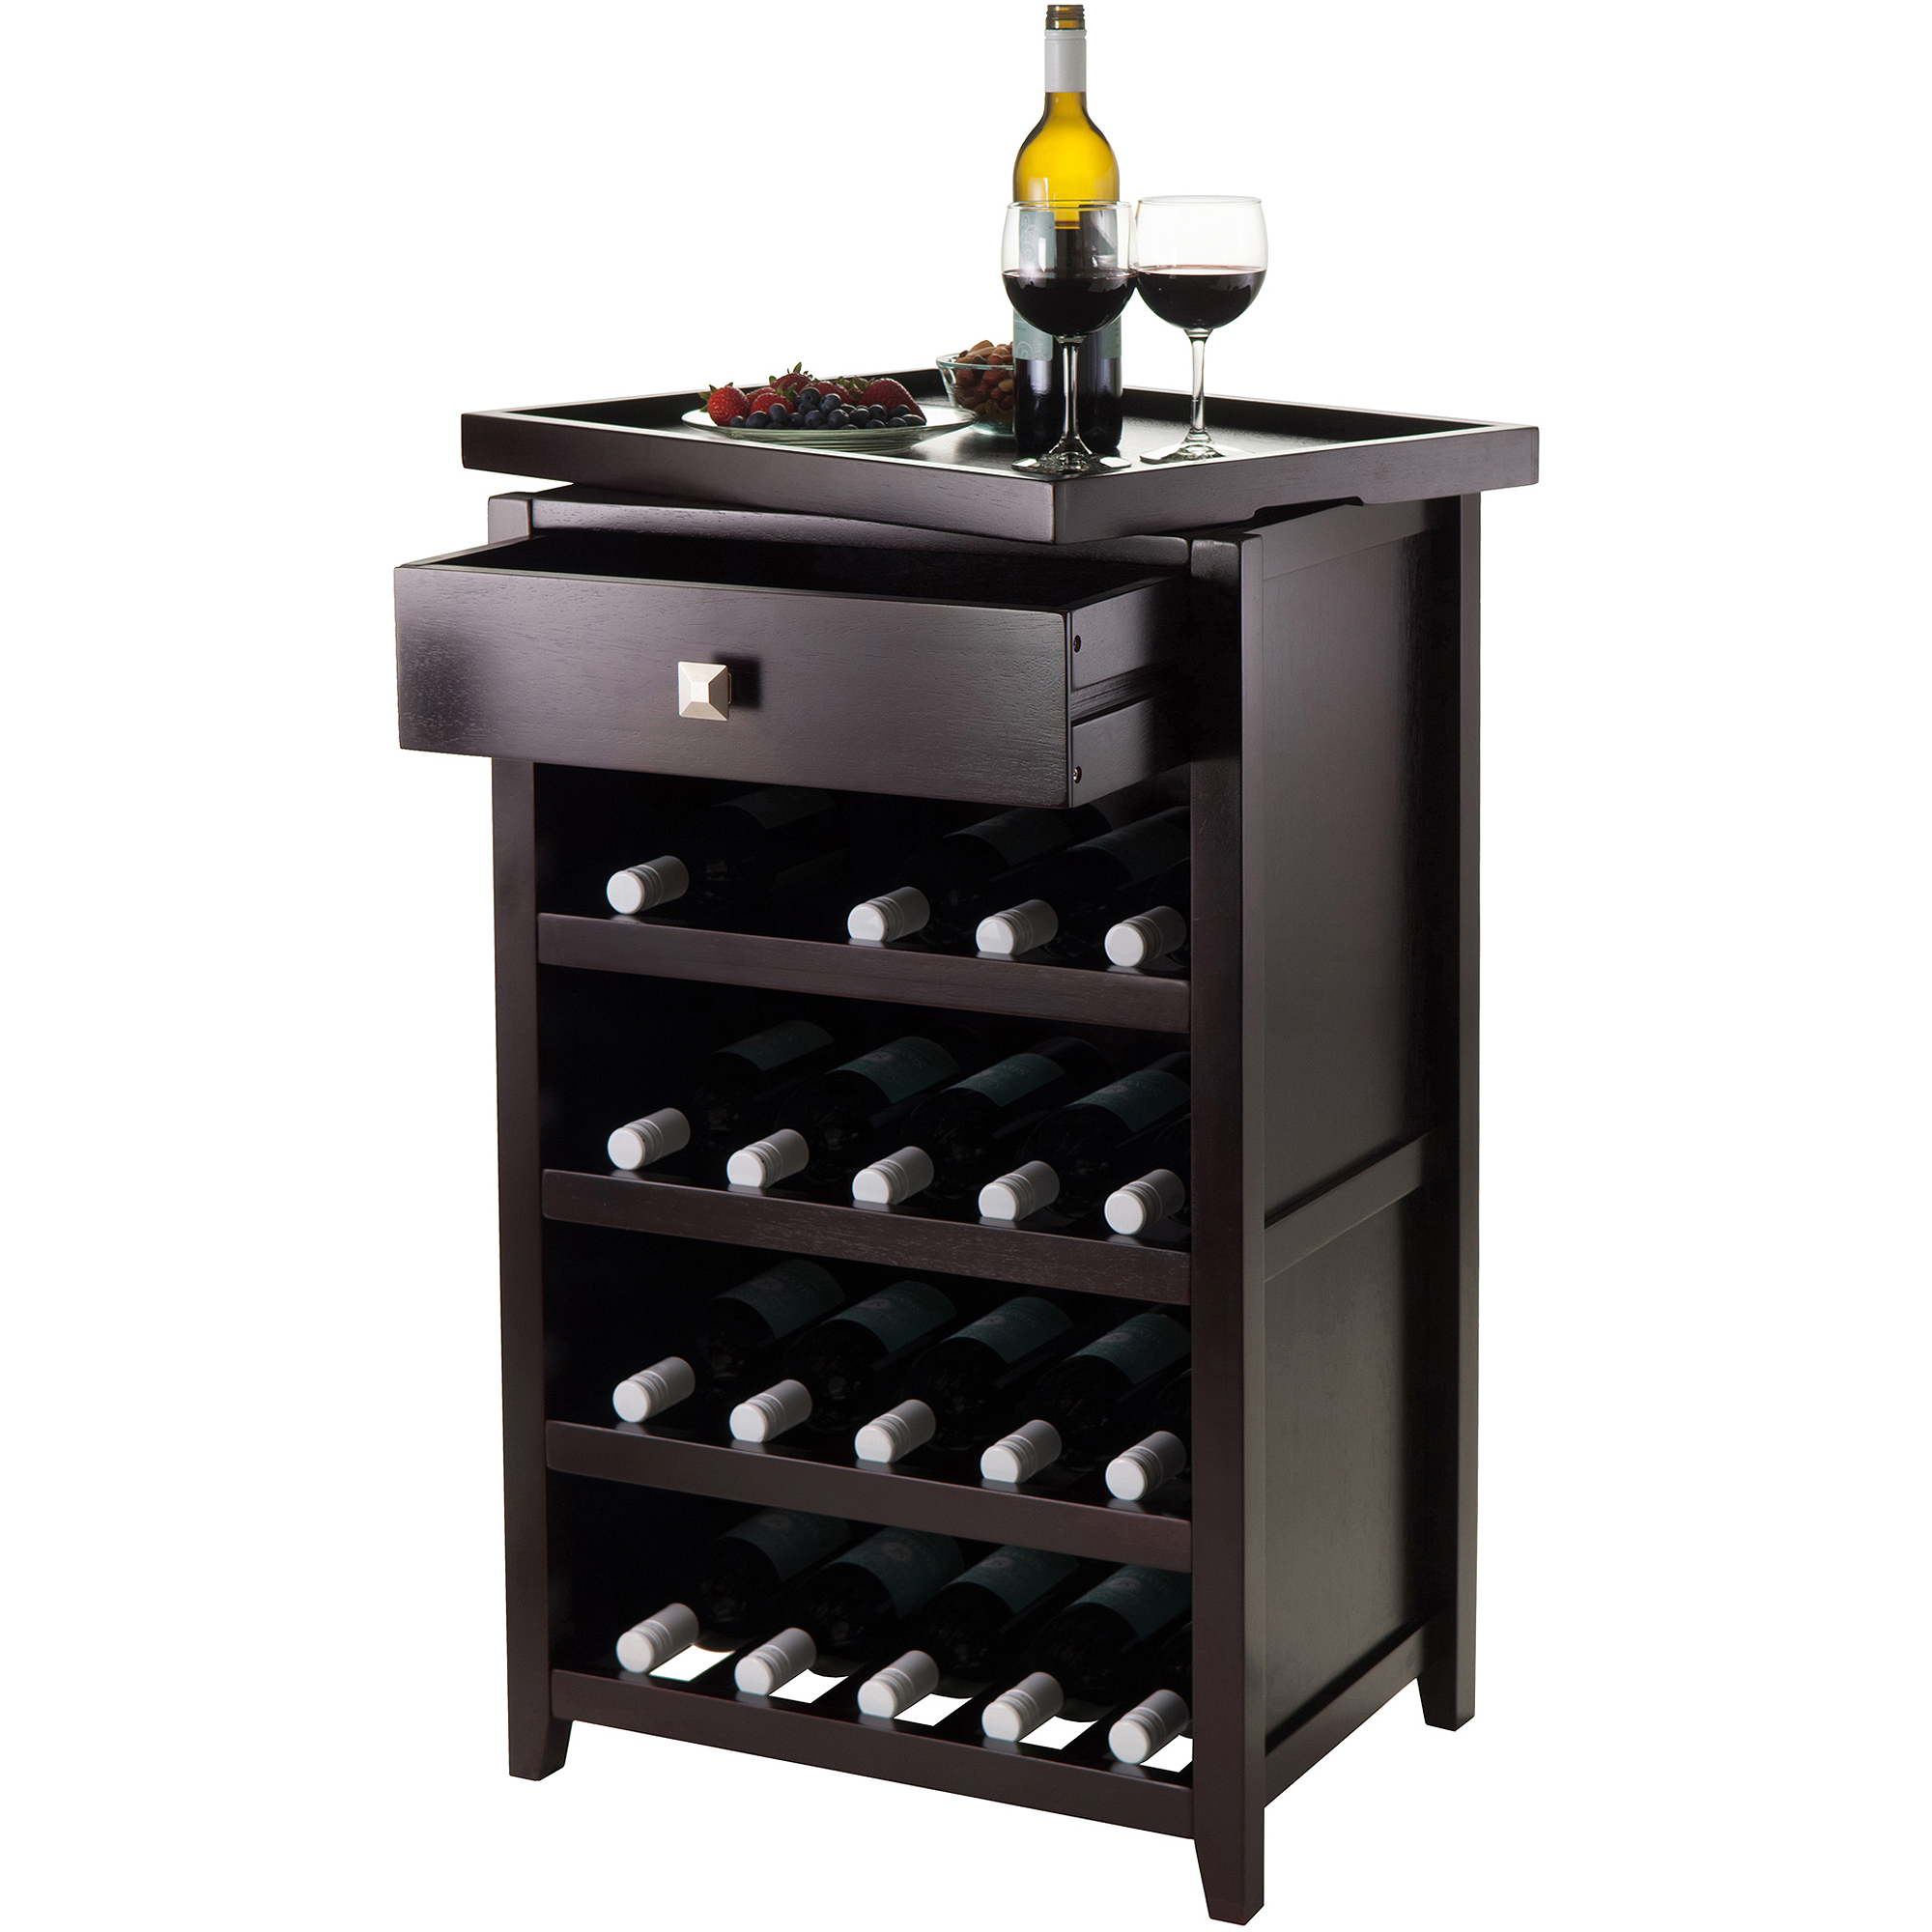 Winsome Wood Zillah Wine Cabinet with Removable Tray, Espresso